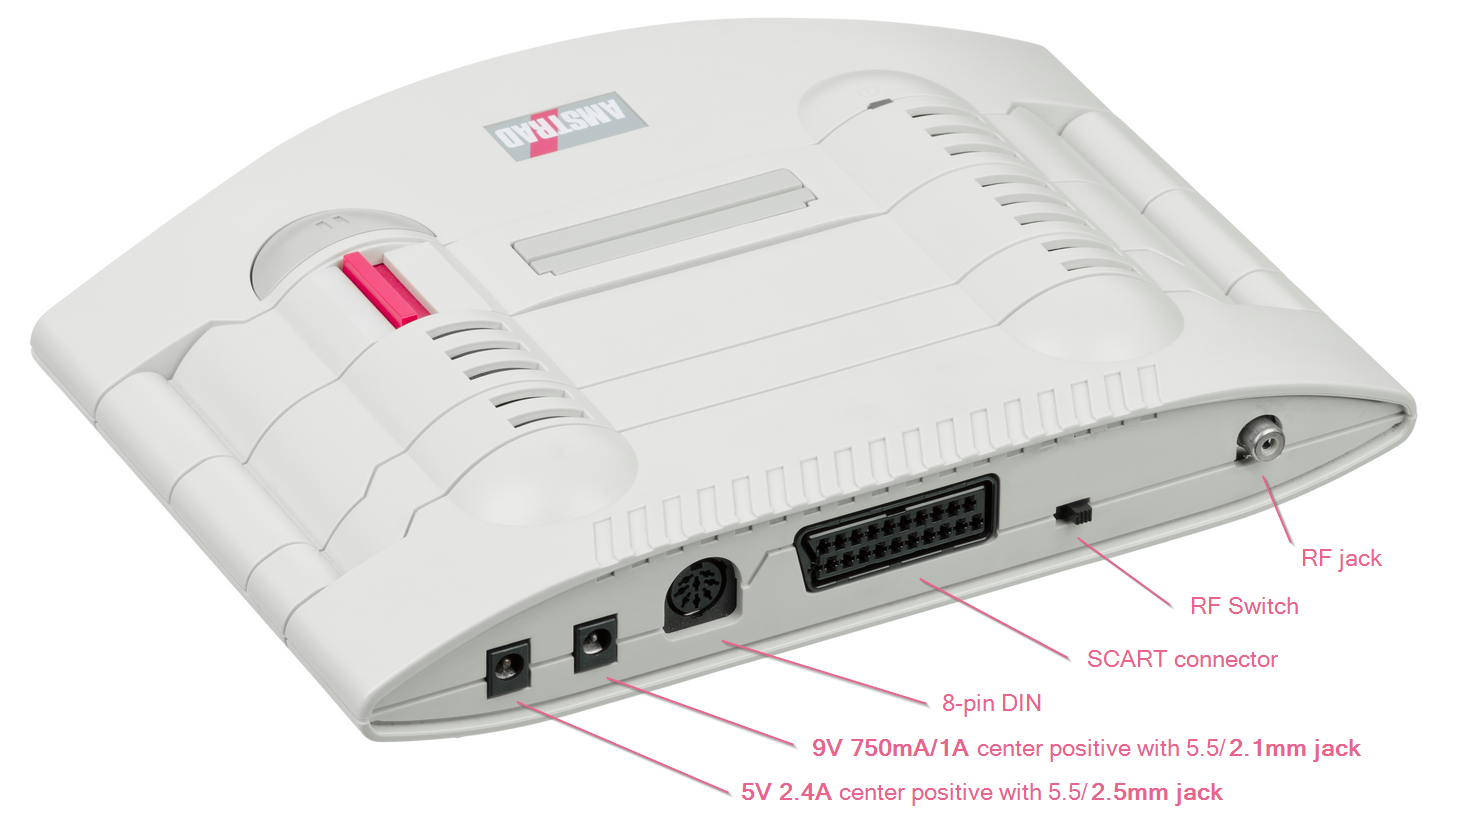 Info on the Amstrad GX-4000